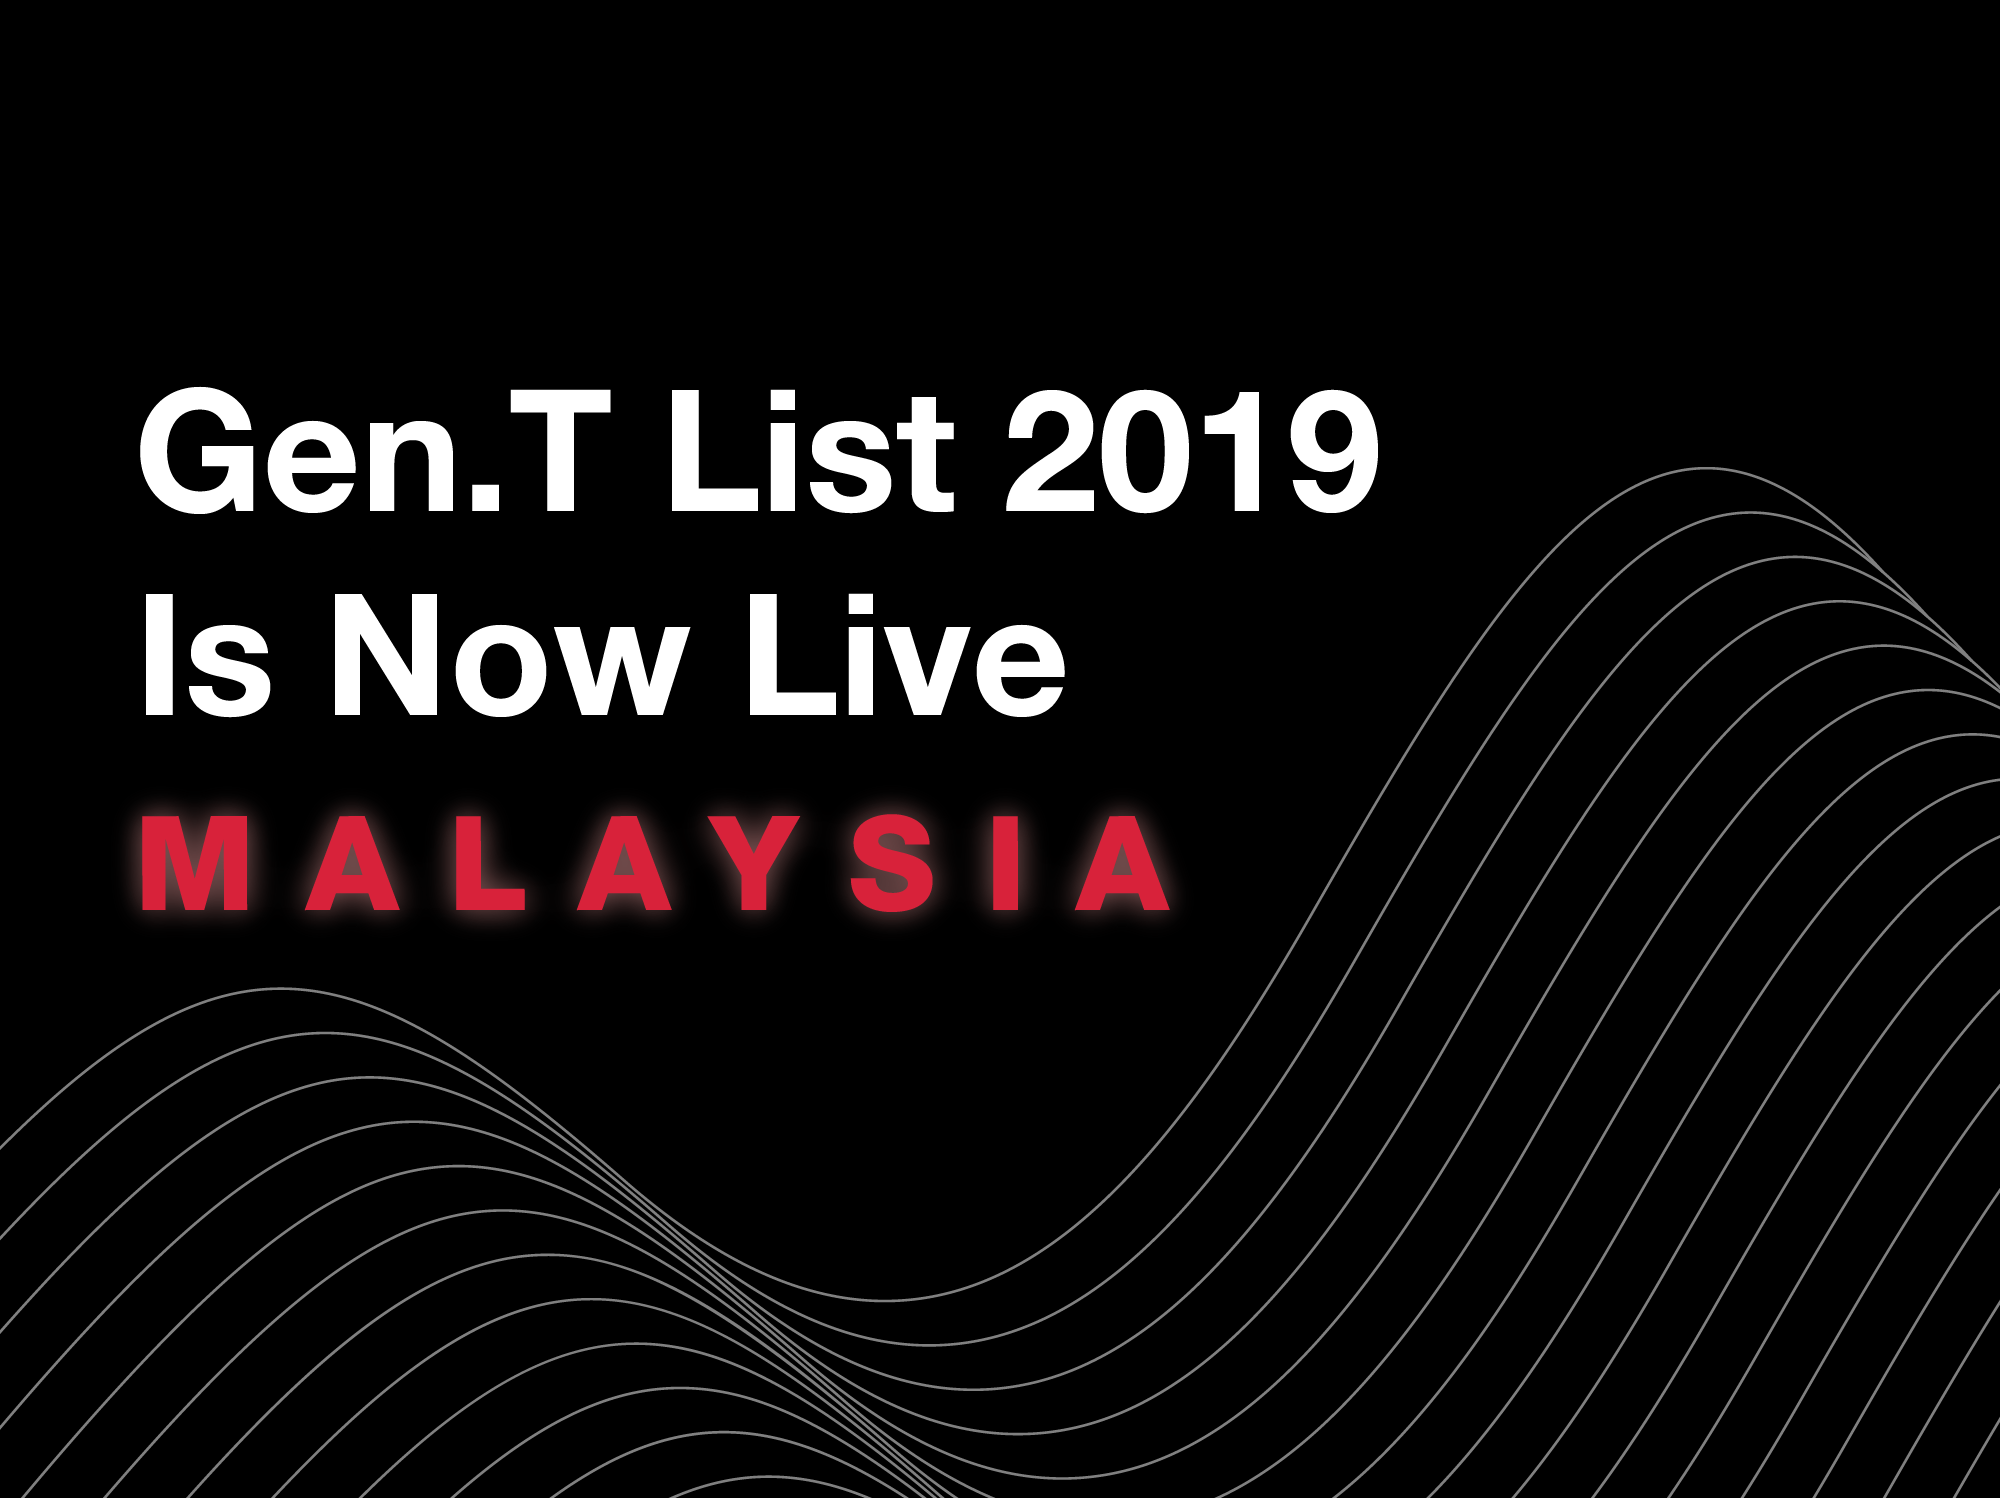 See The Malaysia Honourees On The Gen.T List 2019